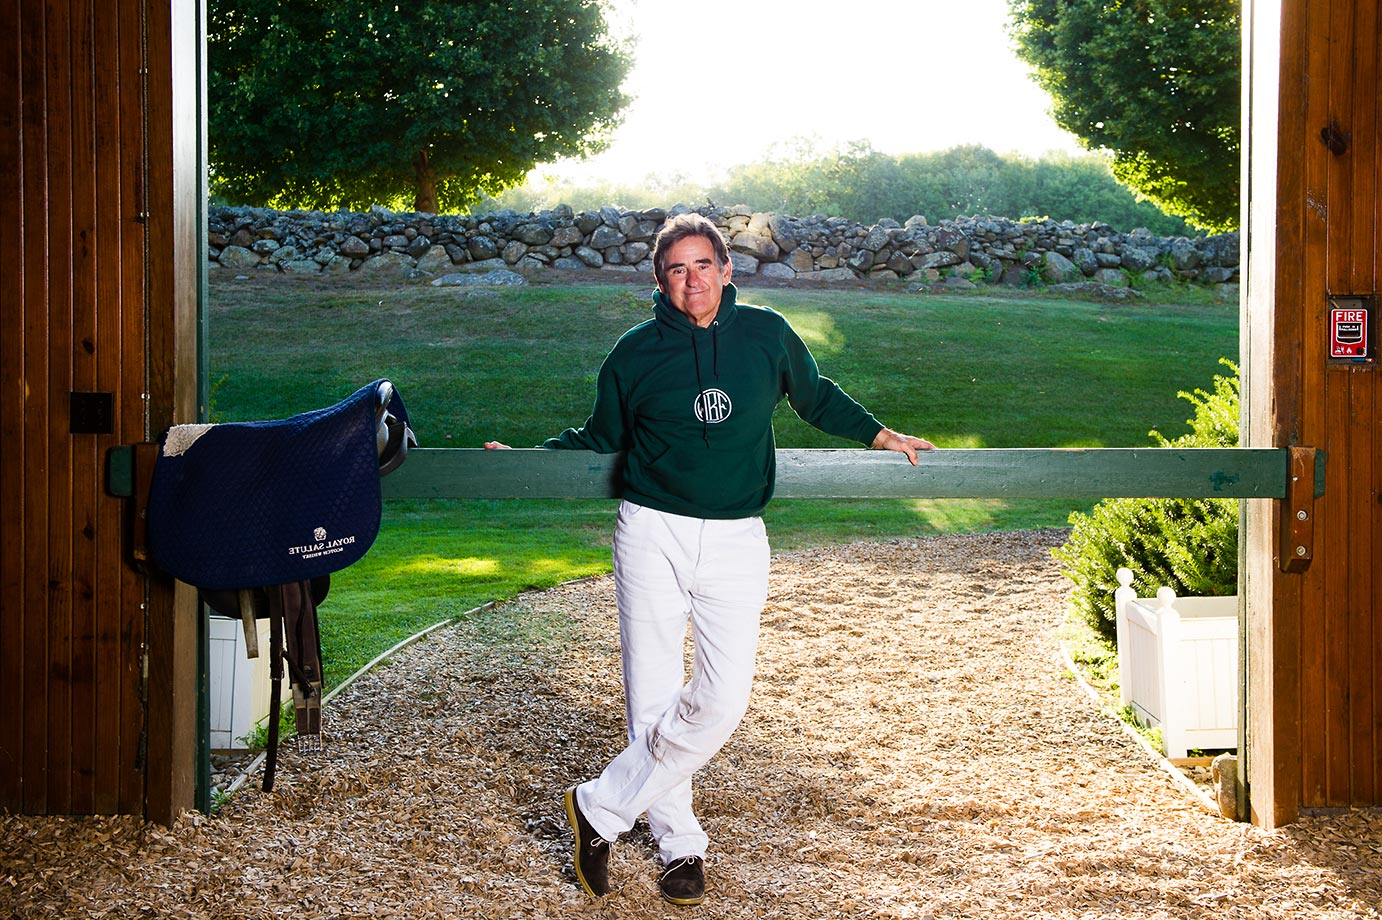 Peter Brant established the Greenwich Polo Club in 1981. It's the venue for high-goal polo during the summer season in the U.S. Peter is also the Patron of the White Birch Polo Team. Here he is at his White Birch Farm in Greenwich, CT, where he used to raise race horses and now breeds and stables his polo ponies.